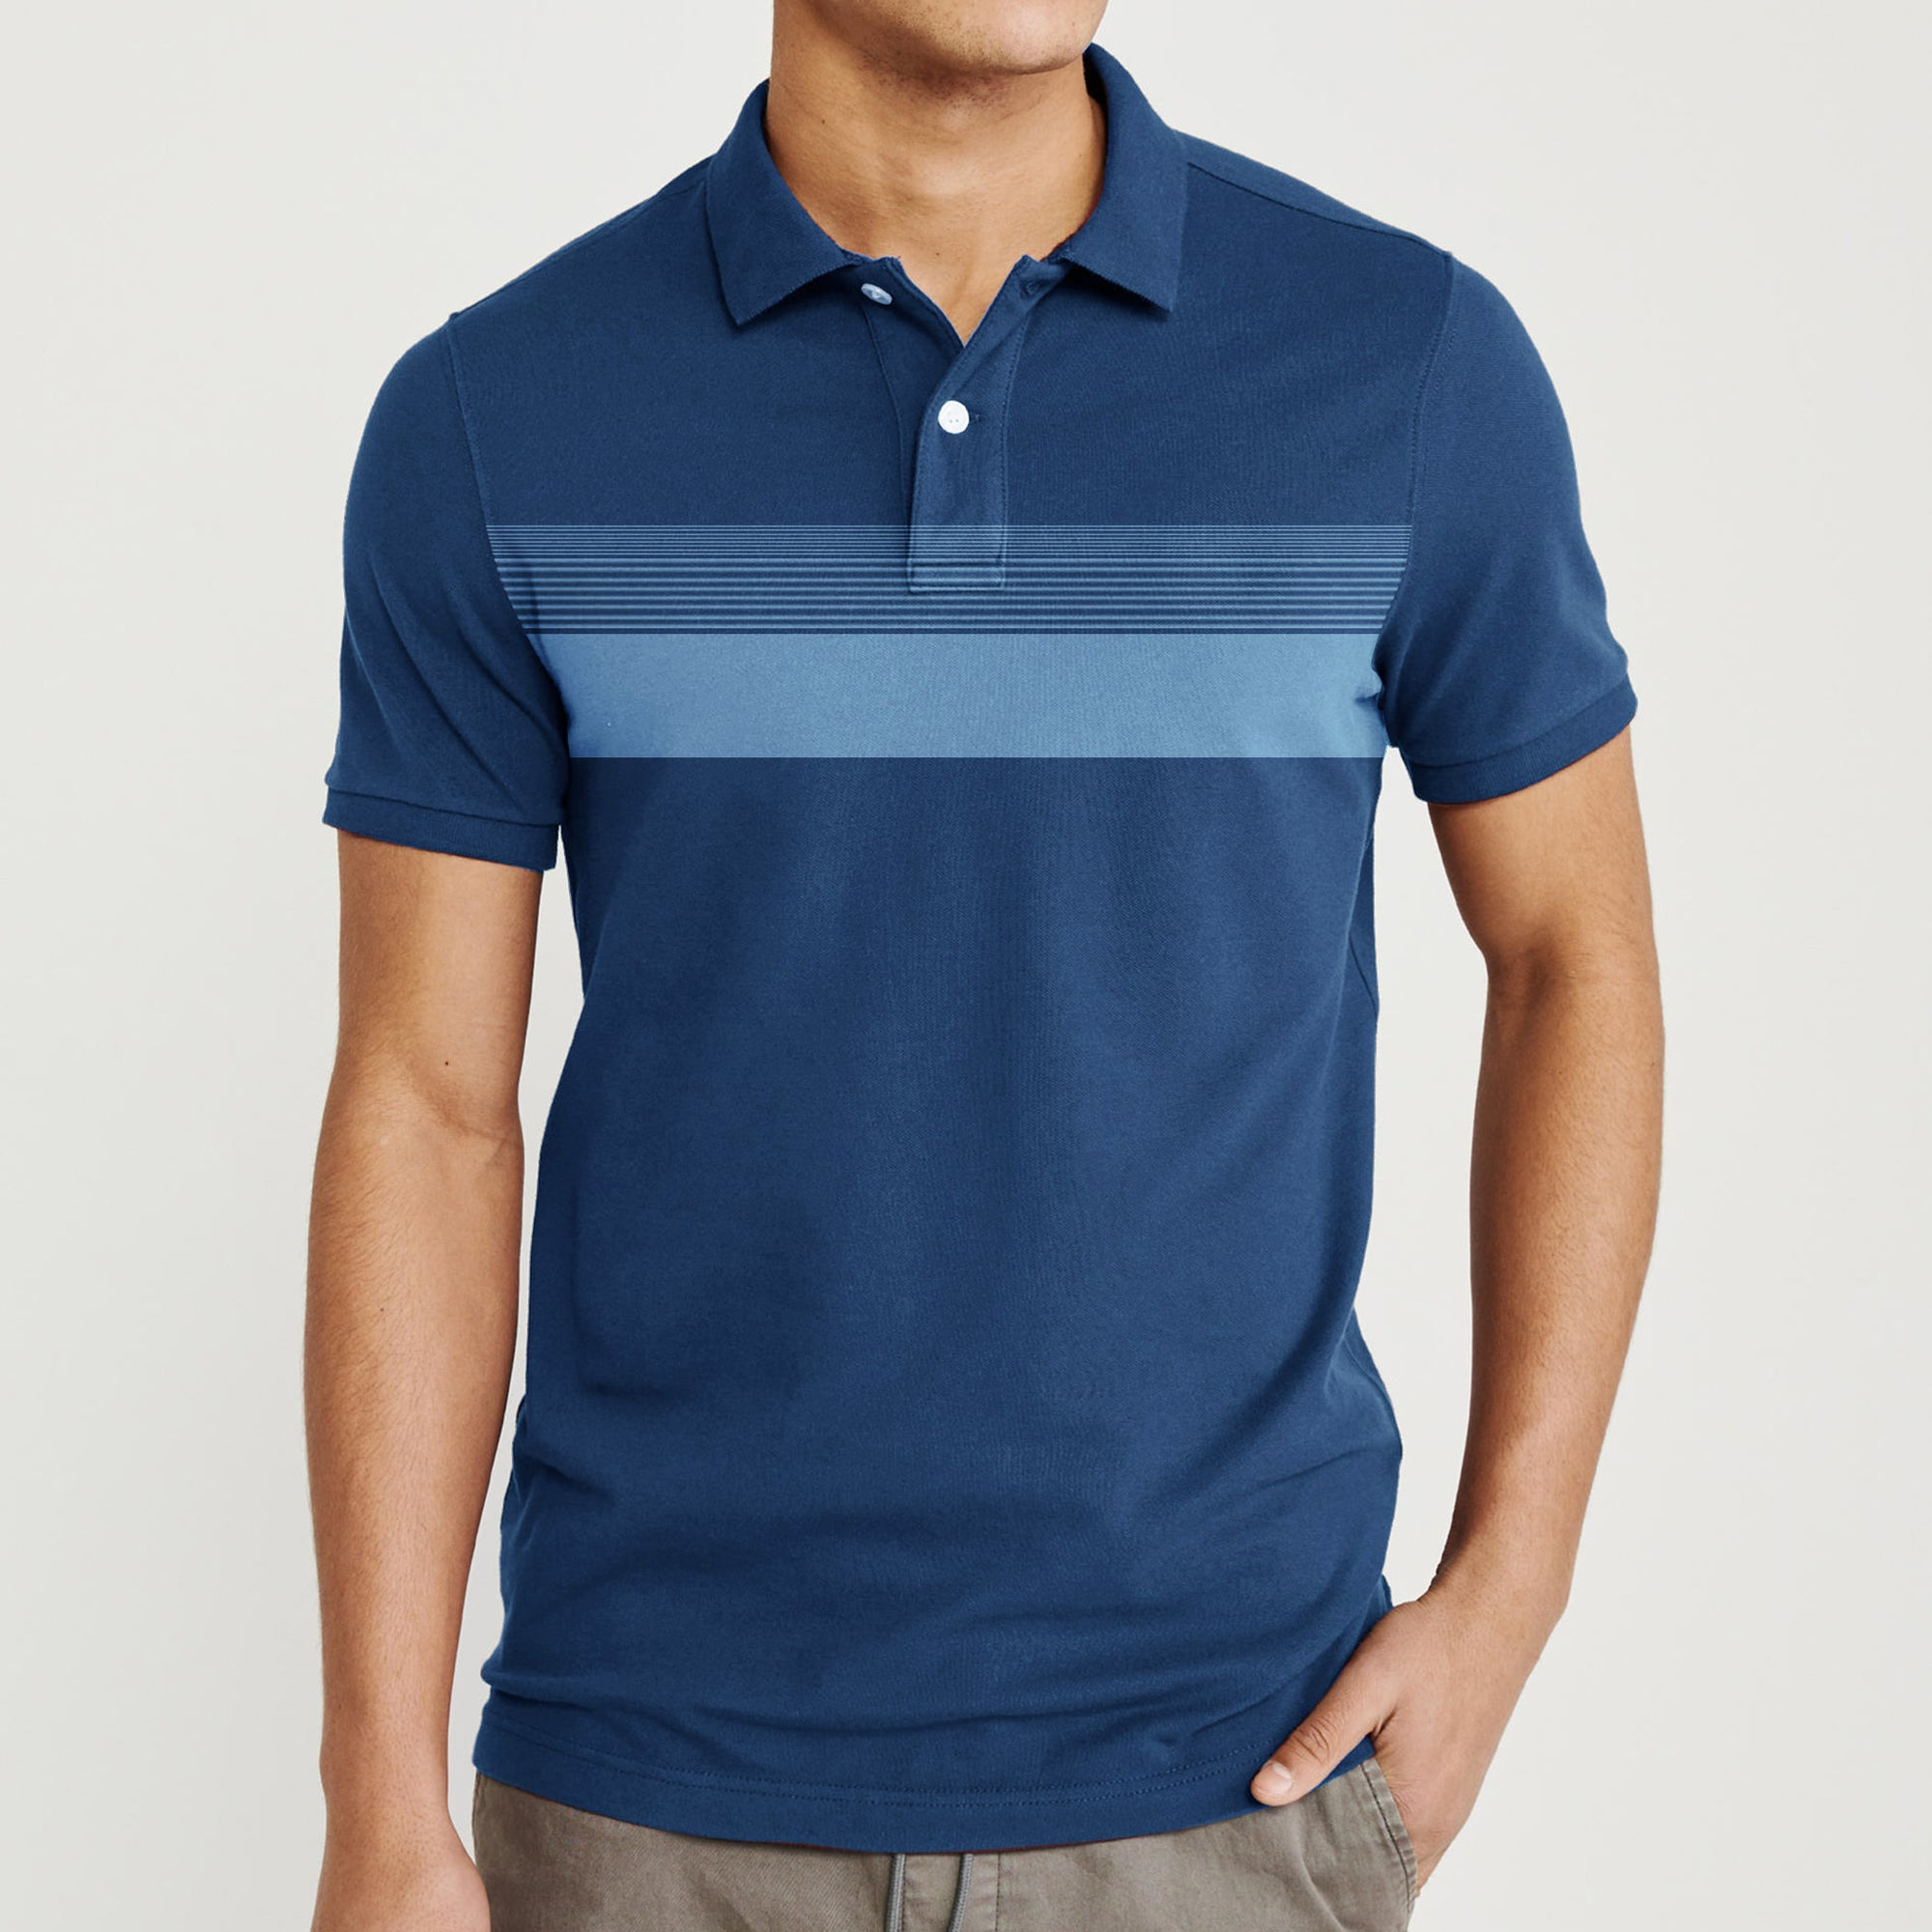 GAP Short Sleeve Single Jersey Polo Shirt For Men-BE8413